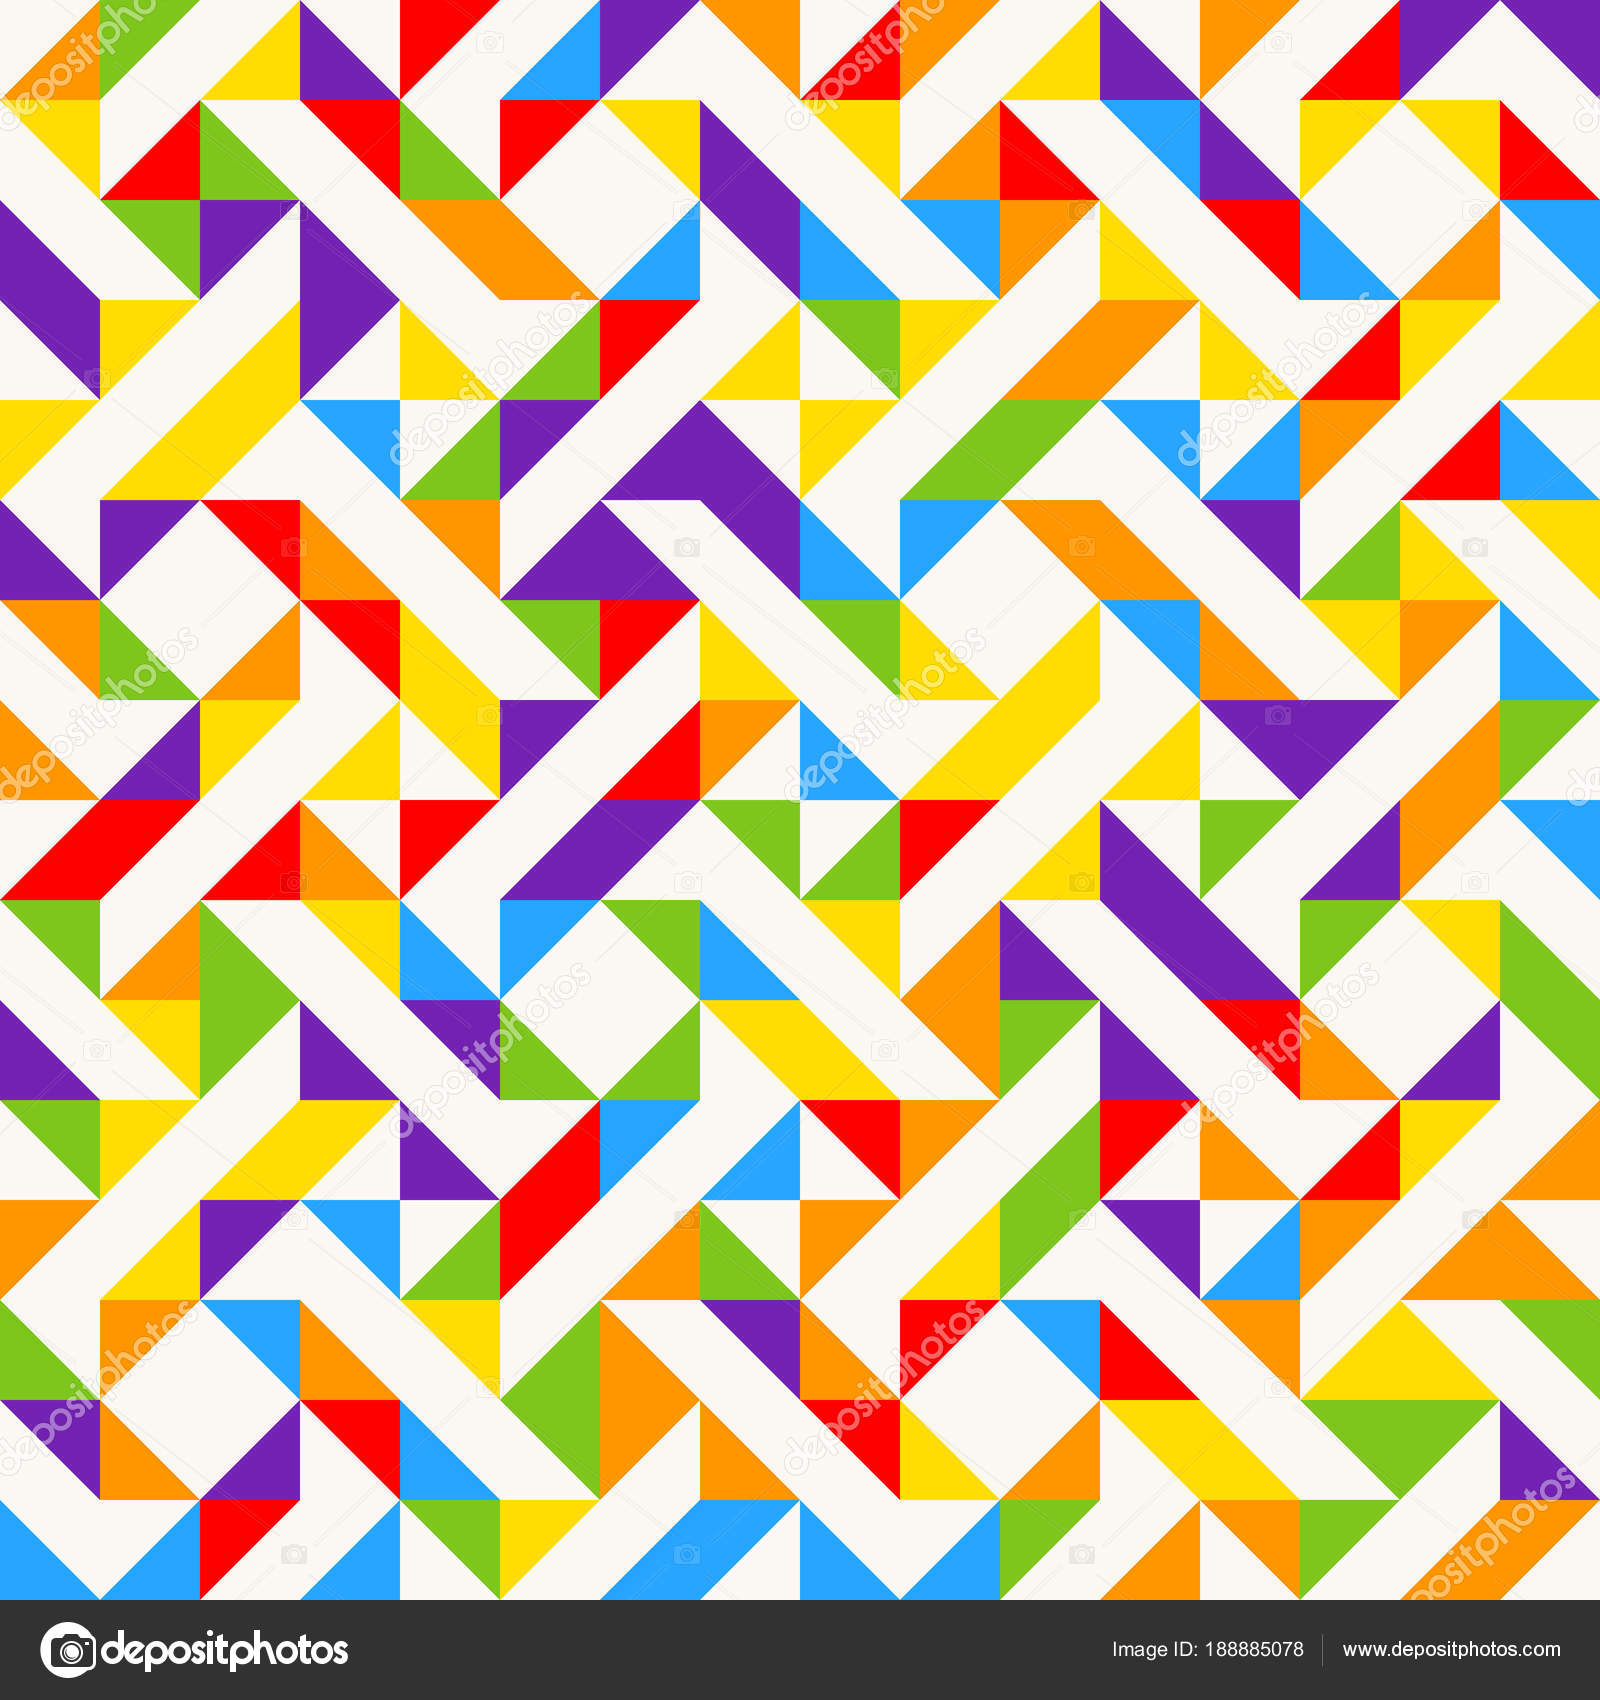 rainbow mosaic tiles abstract geometric background seamless vector pattern stock vector c slanapotam 188885078 https depositphotos com 188885078 stock illustration rainbow mosaic tiles abstract geometric html